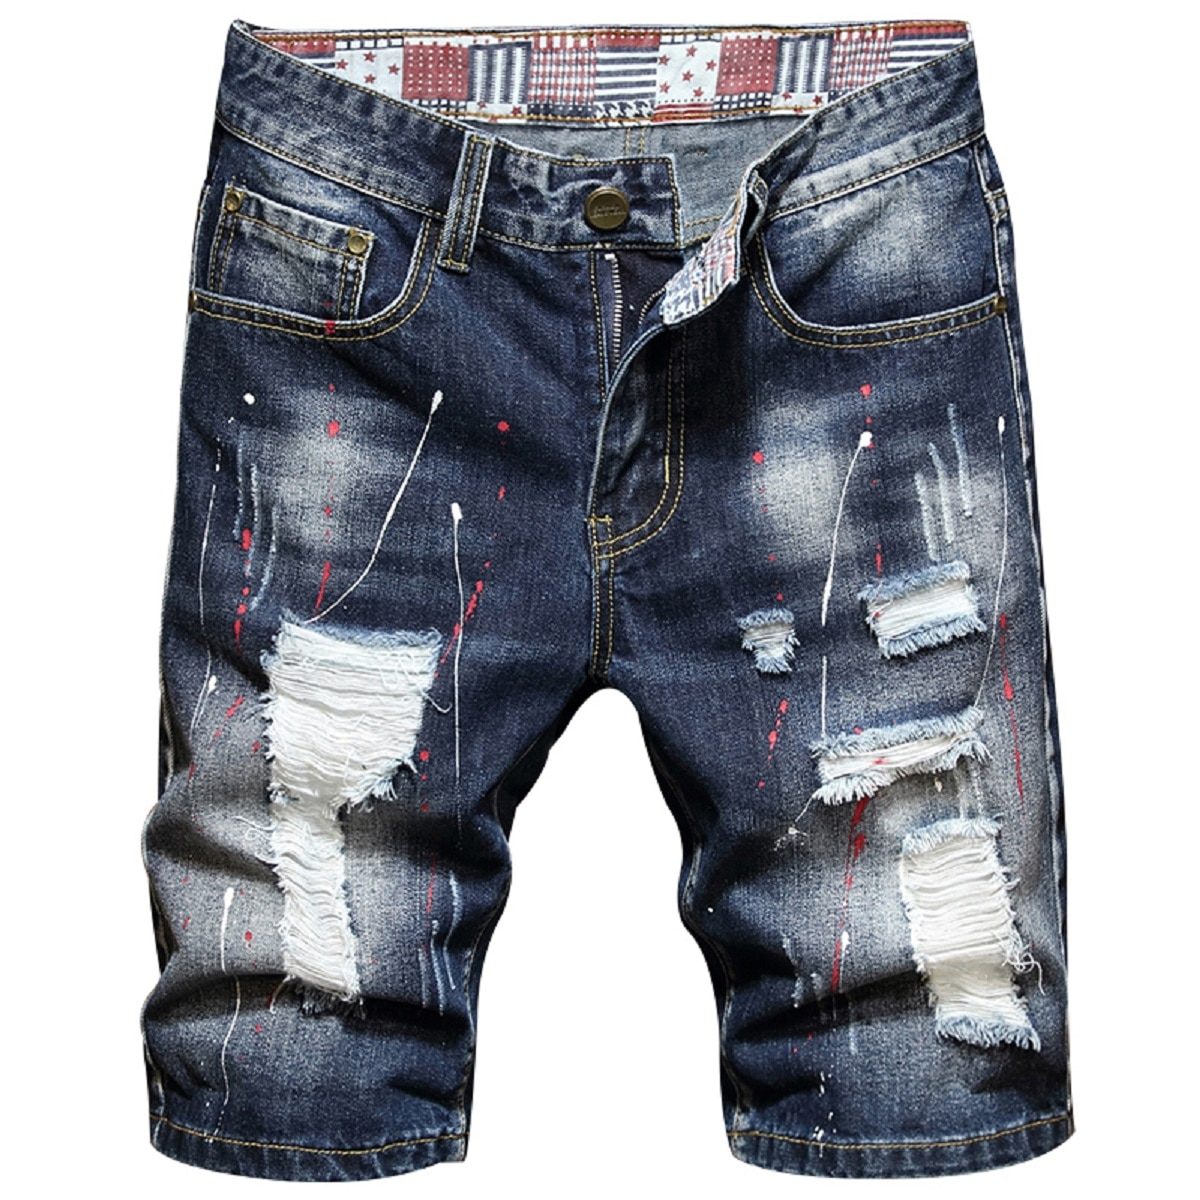 2021 Mens Ripped Short Jeans Clothing Bermuda Cotton Shorts Breathable Denim Shorts Male New Fashion Size 28-40